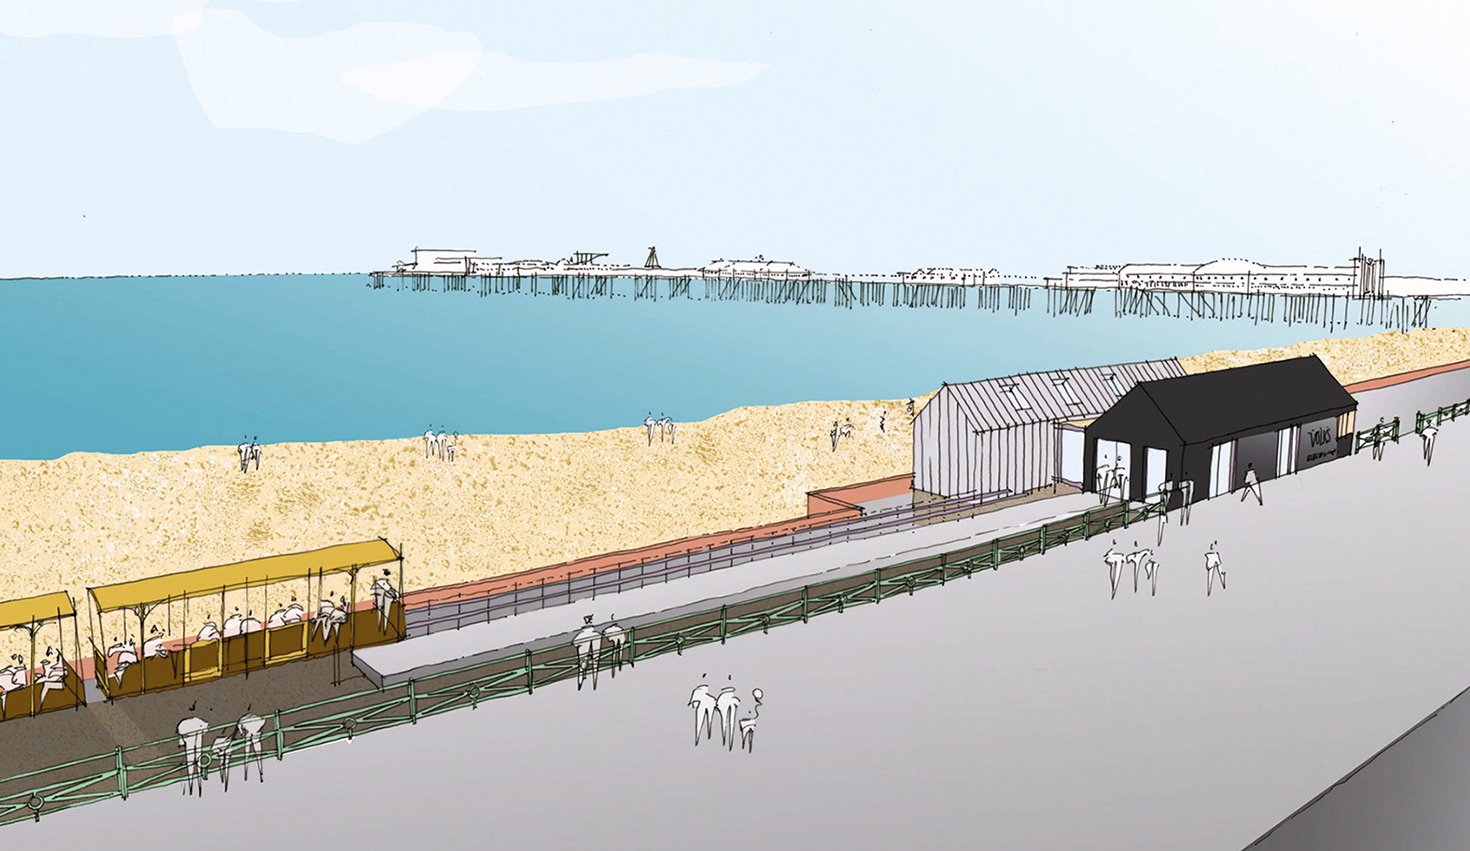 drawing showing volks railway on the seafront